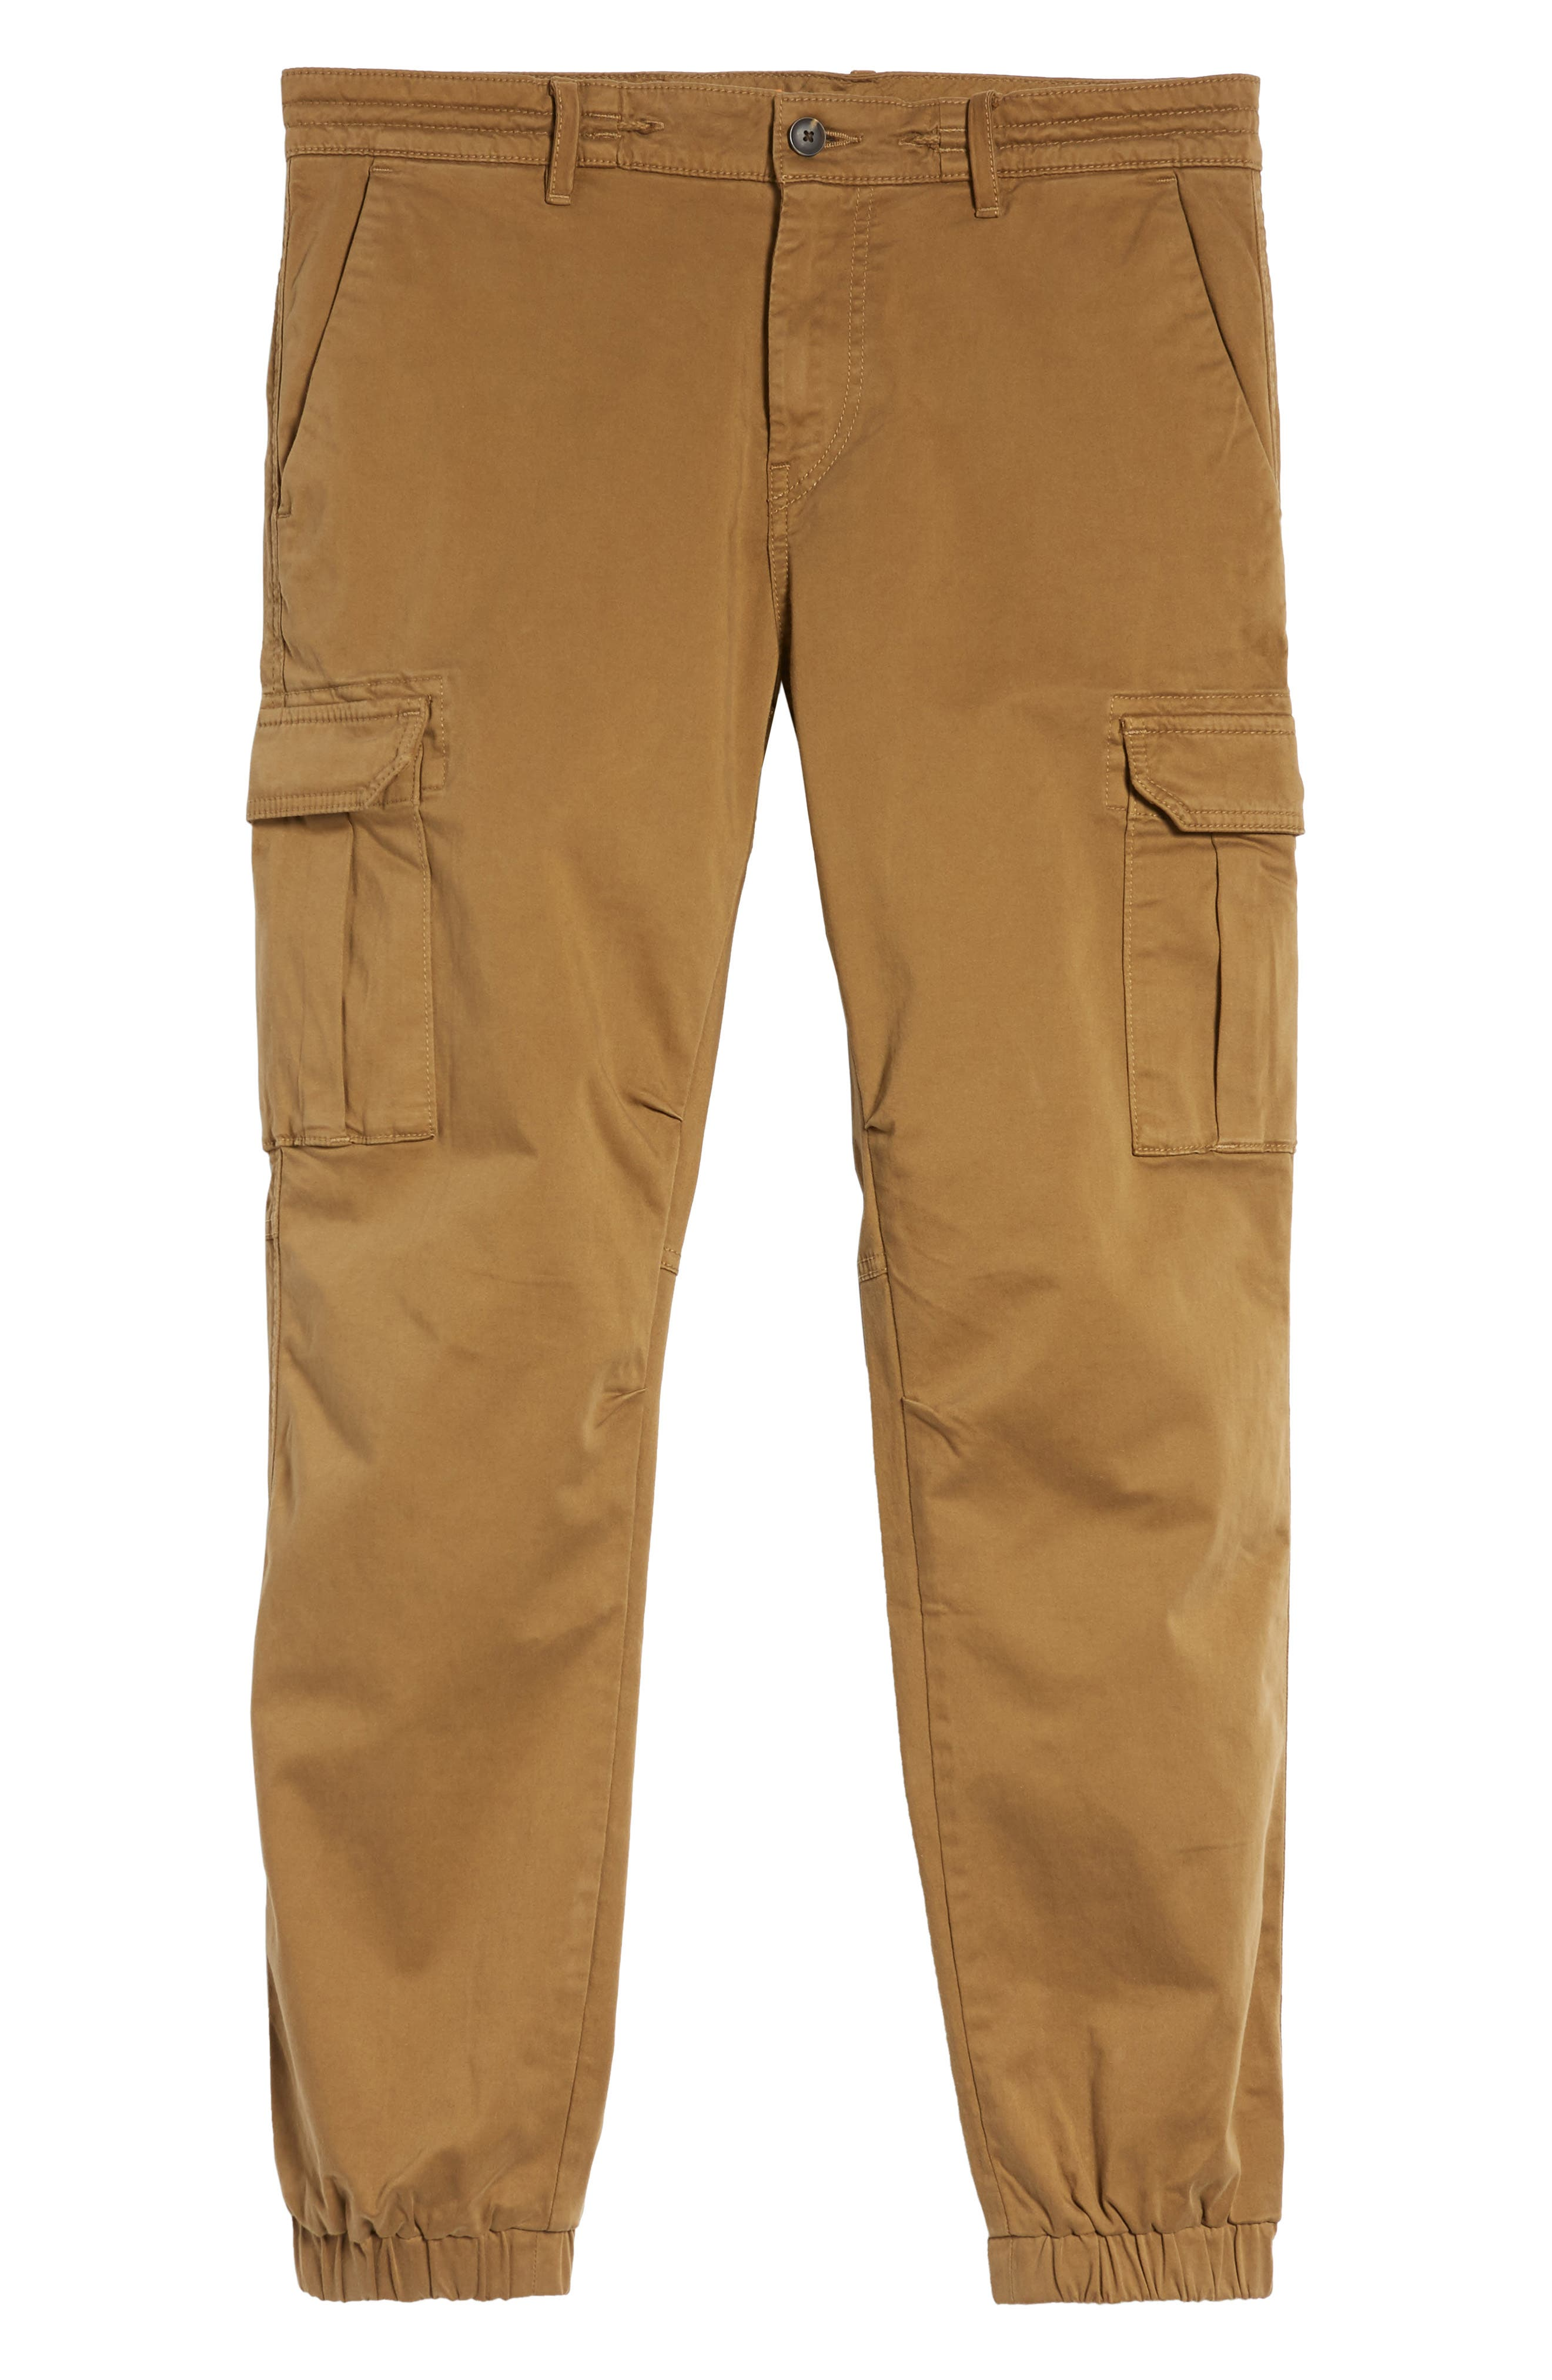 Shay 2 Cargo Pants,                             Alternate thumbnail 6, color,                             280